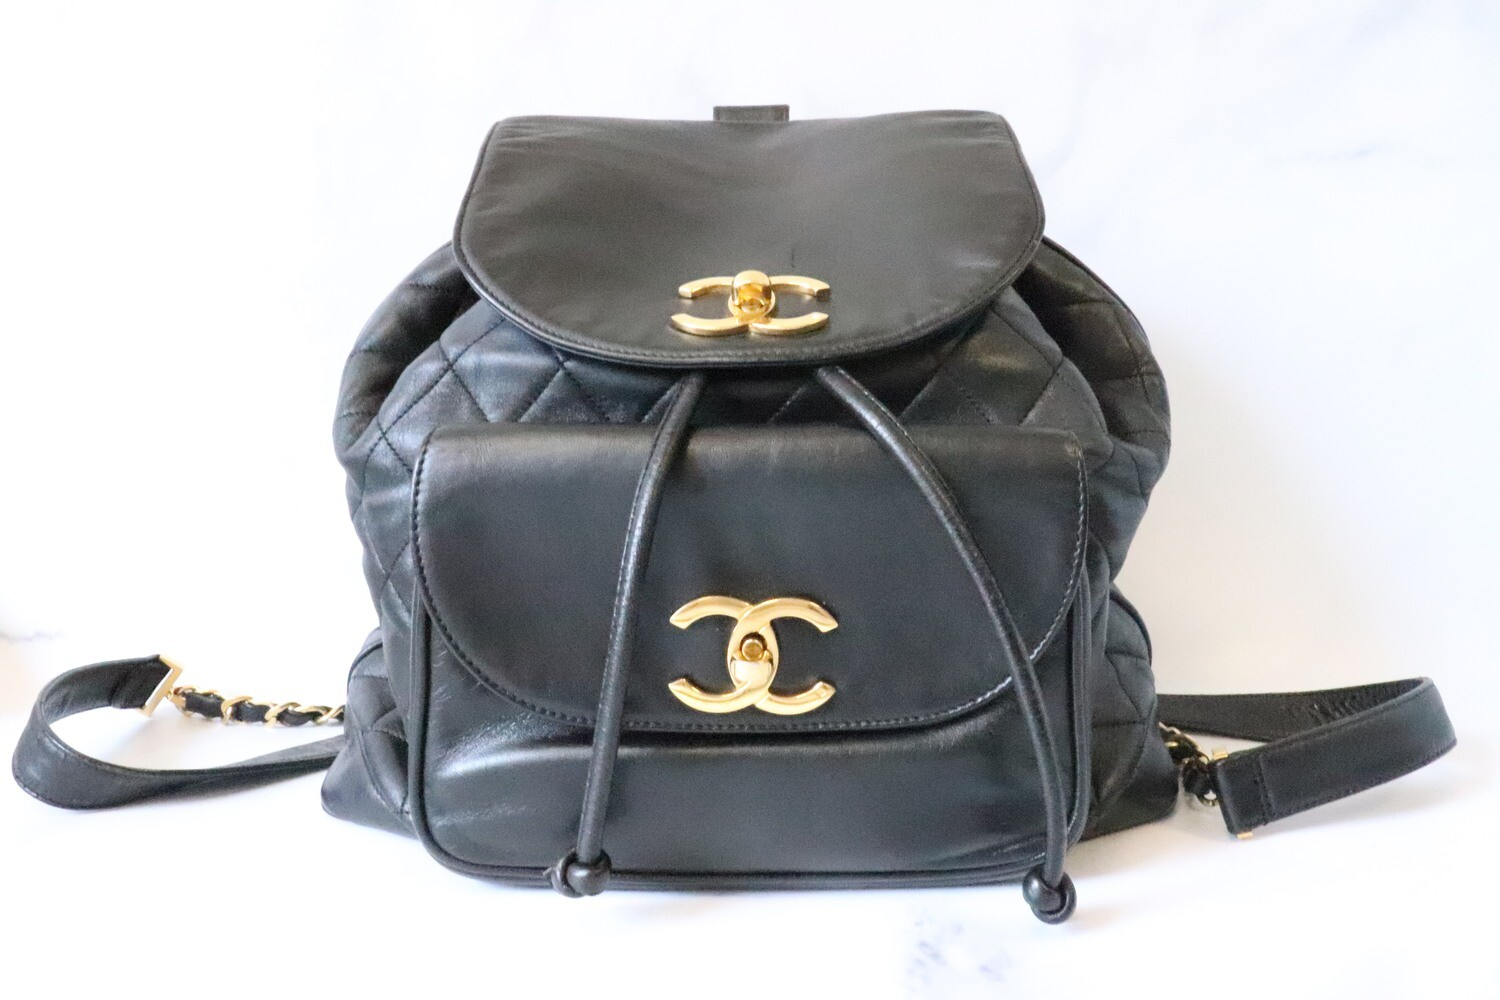 Chanel Vintage Backpack Black Lambskin Leather, Gold Hardware, Preowned - No Dustbag